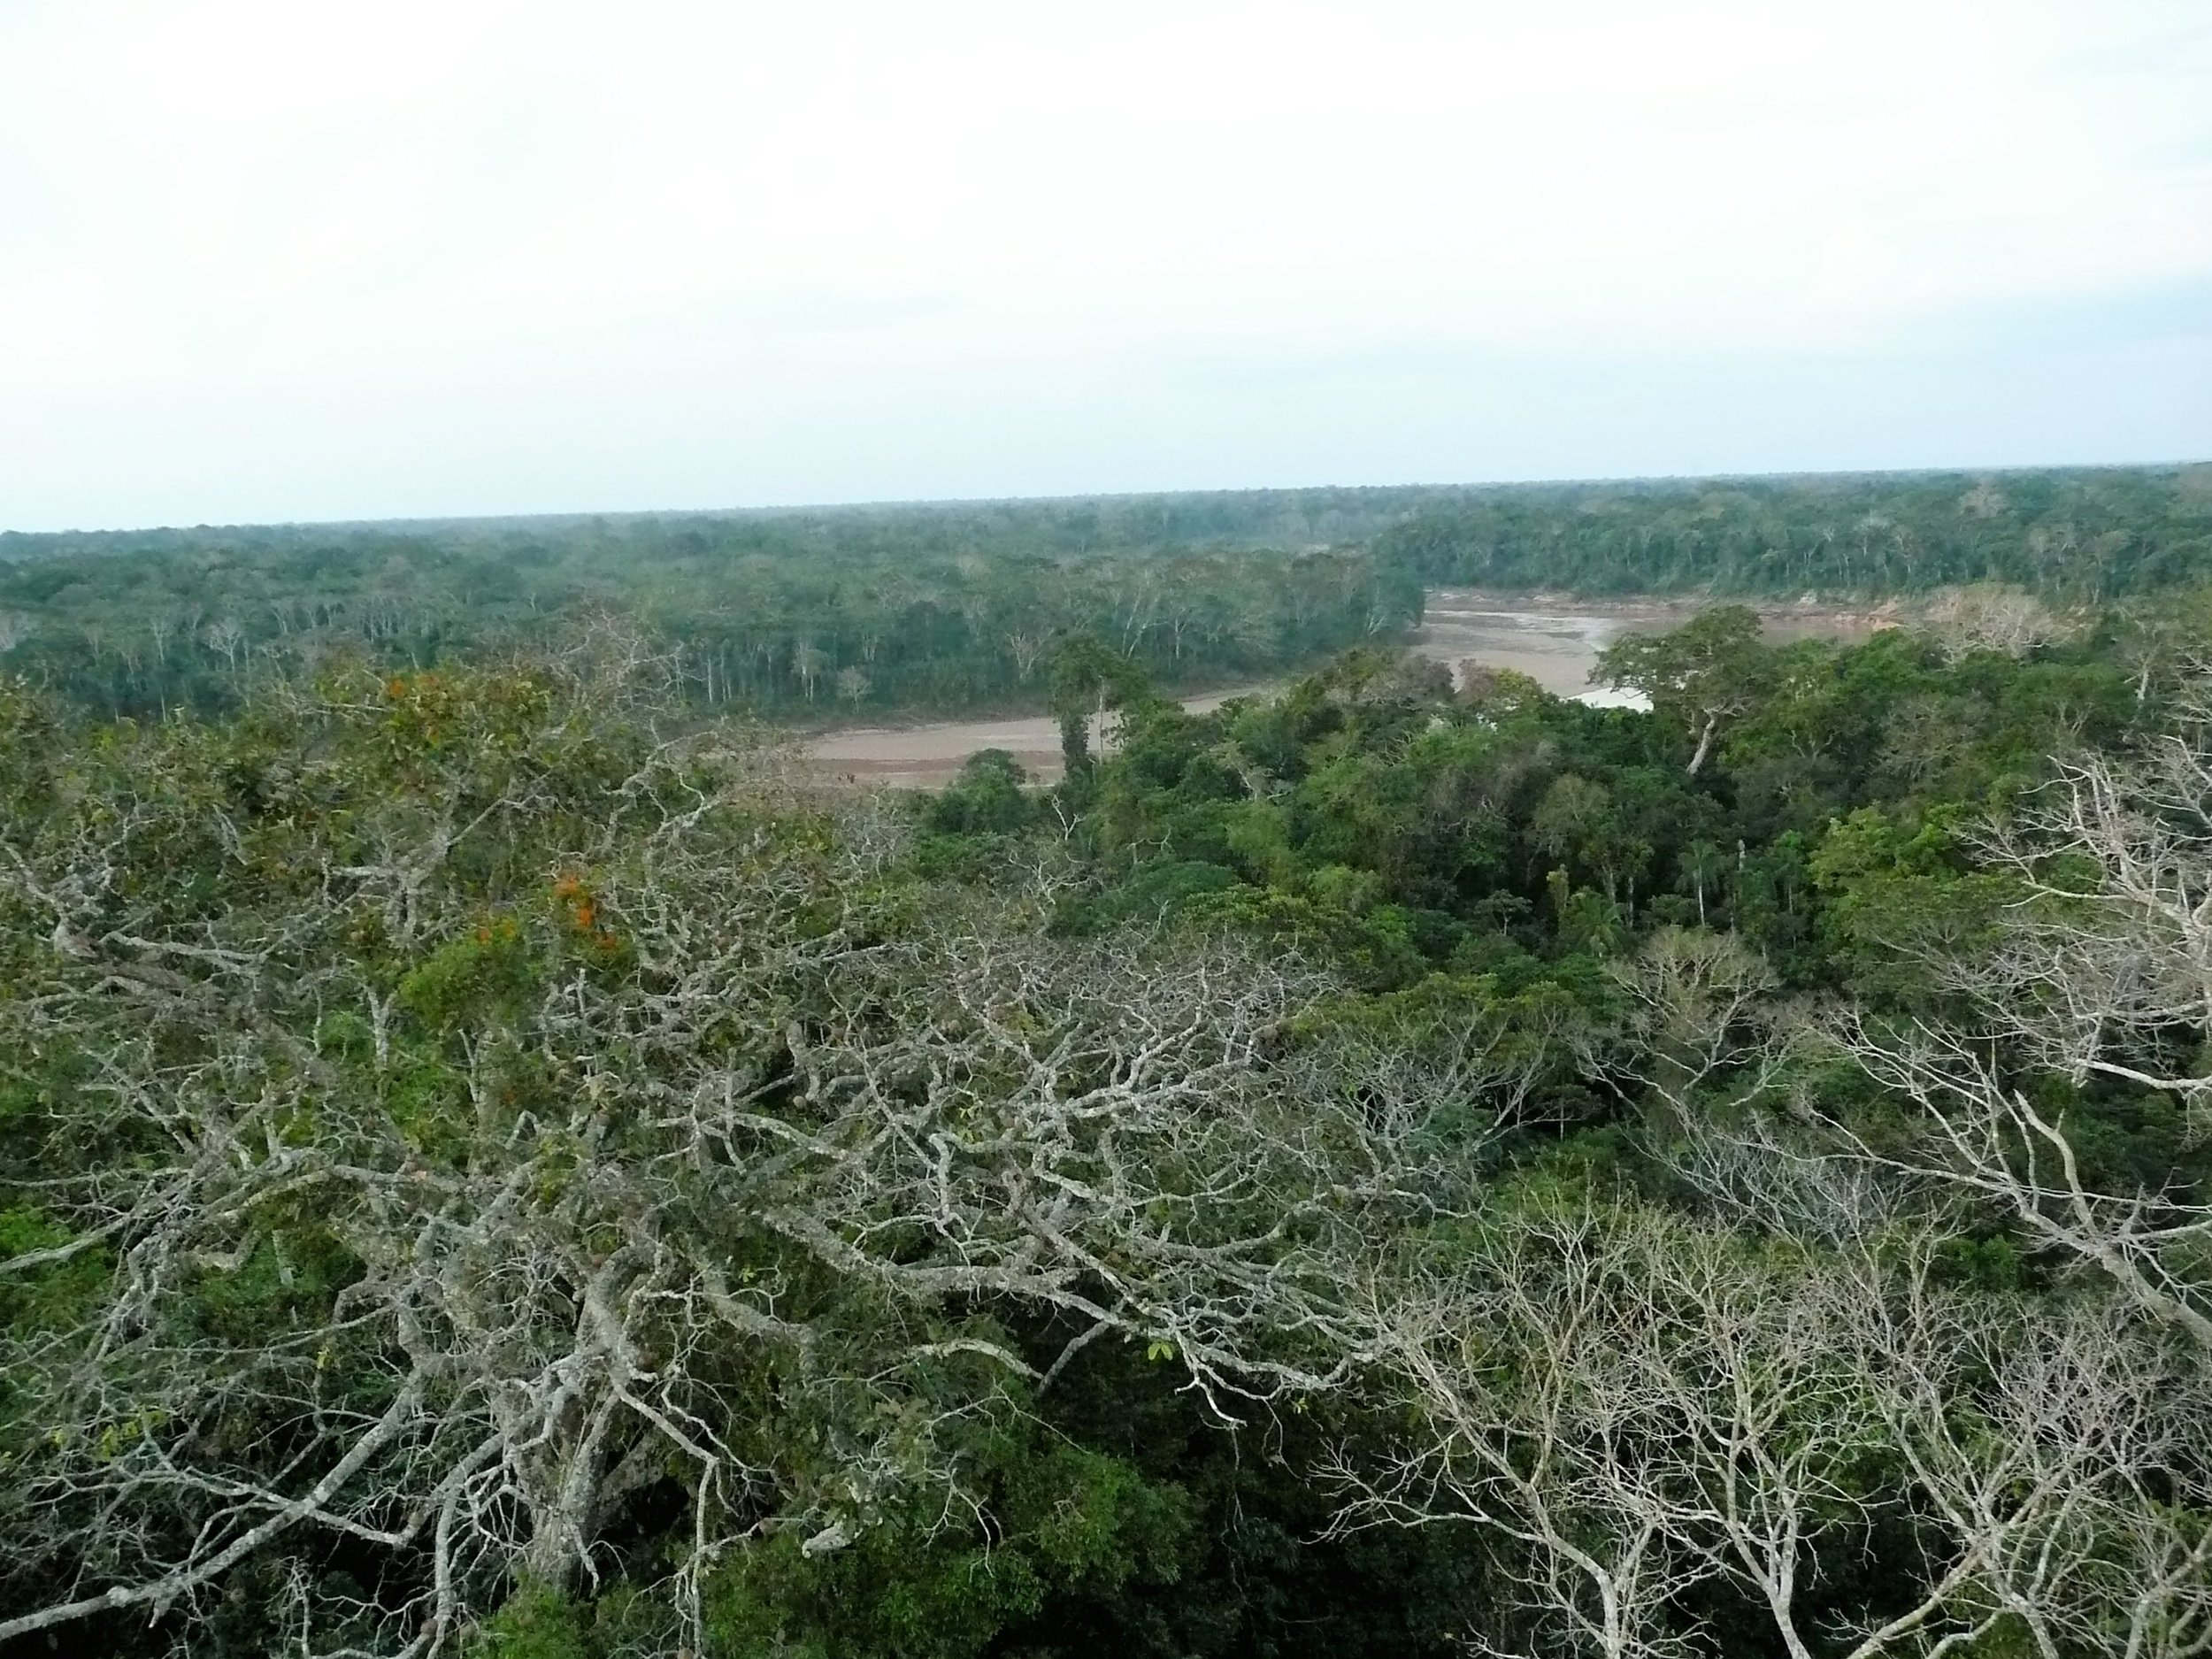 The Amazon Rainforest, from the treetops (Peru)